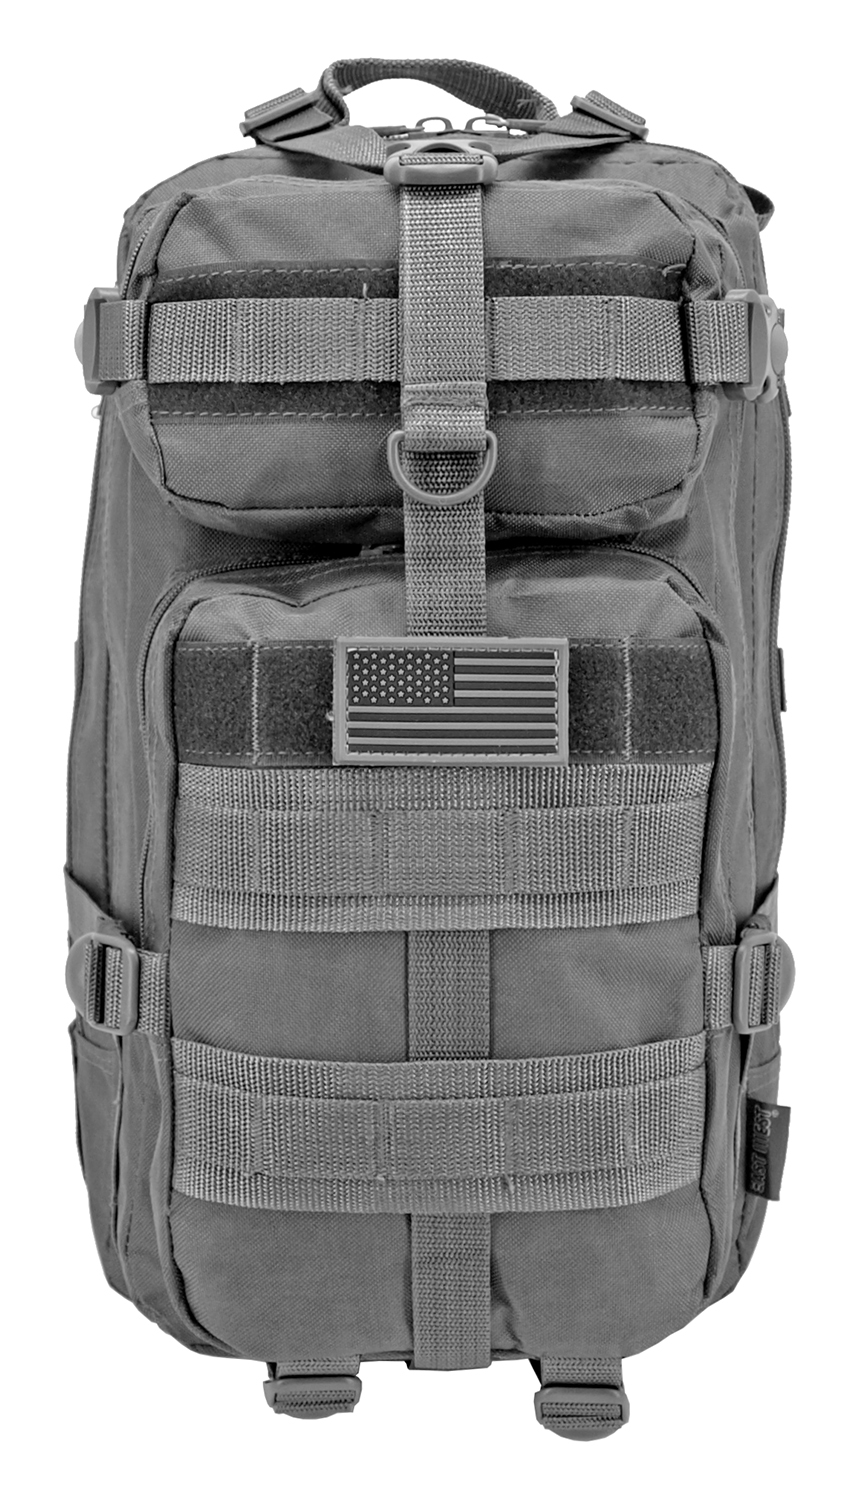 Sortie Mission Pack Backpack - Grey